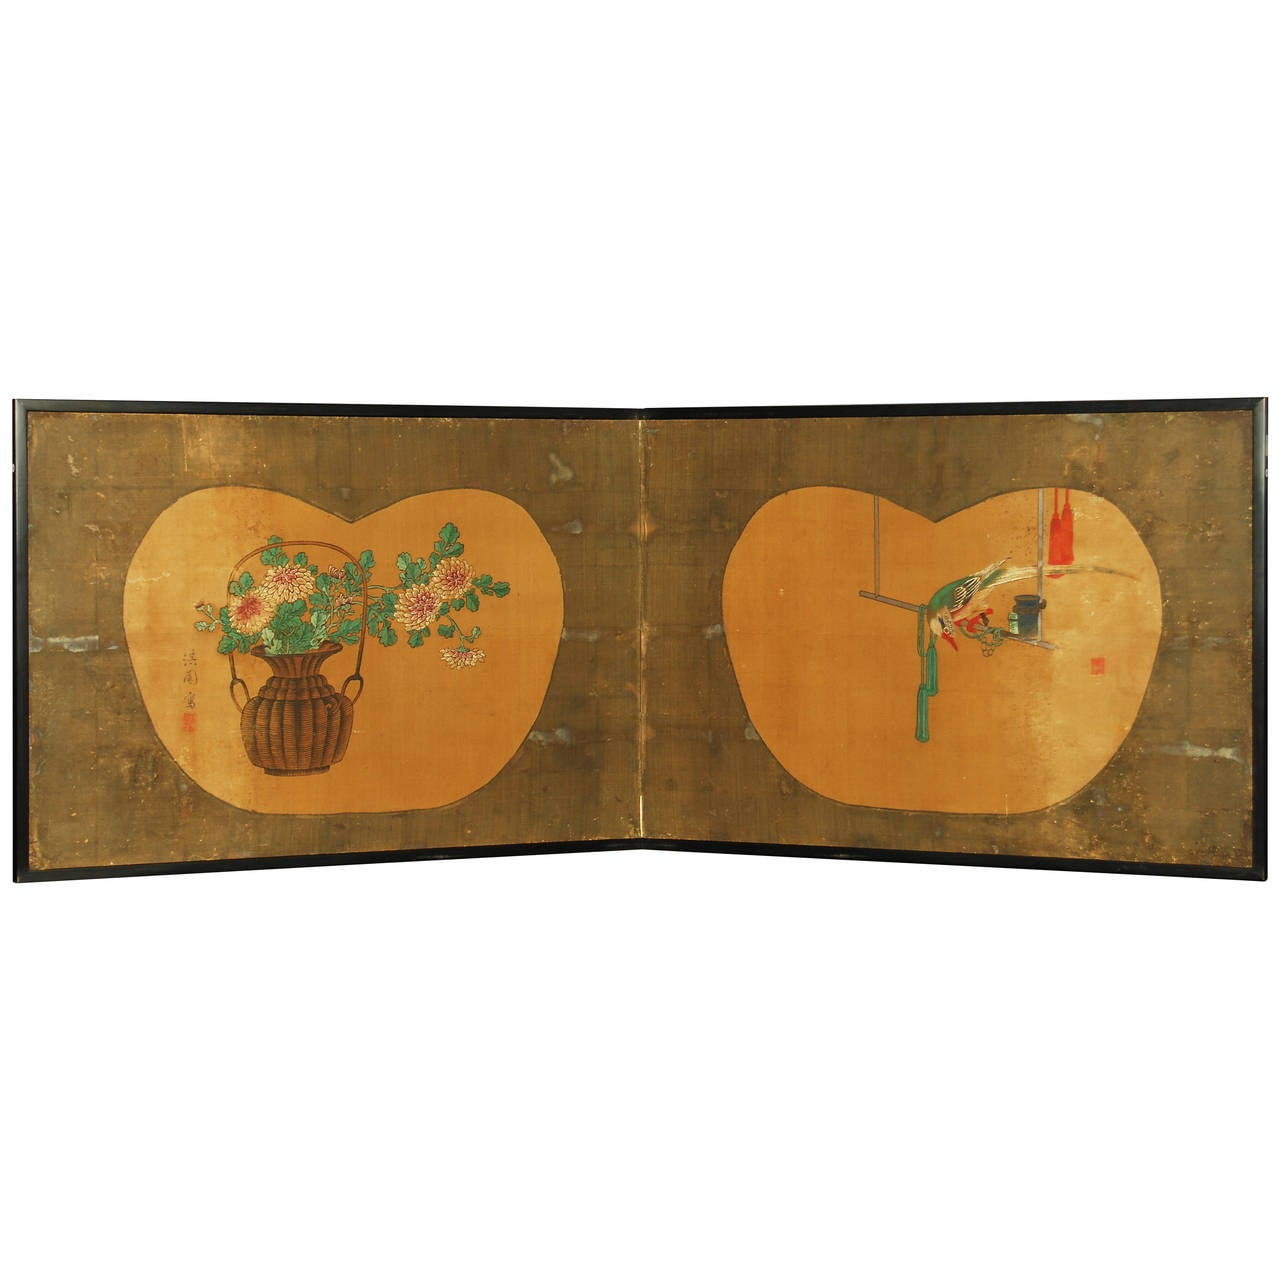 Antique japanese screens for sale - Antique Japanese Two Panel Screen By Yanagisawa Kien 1